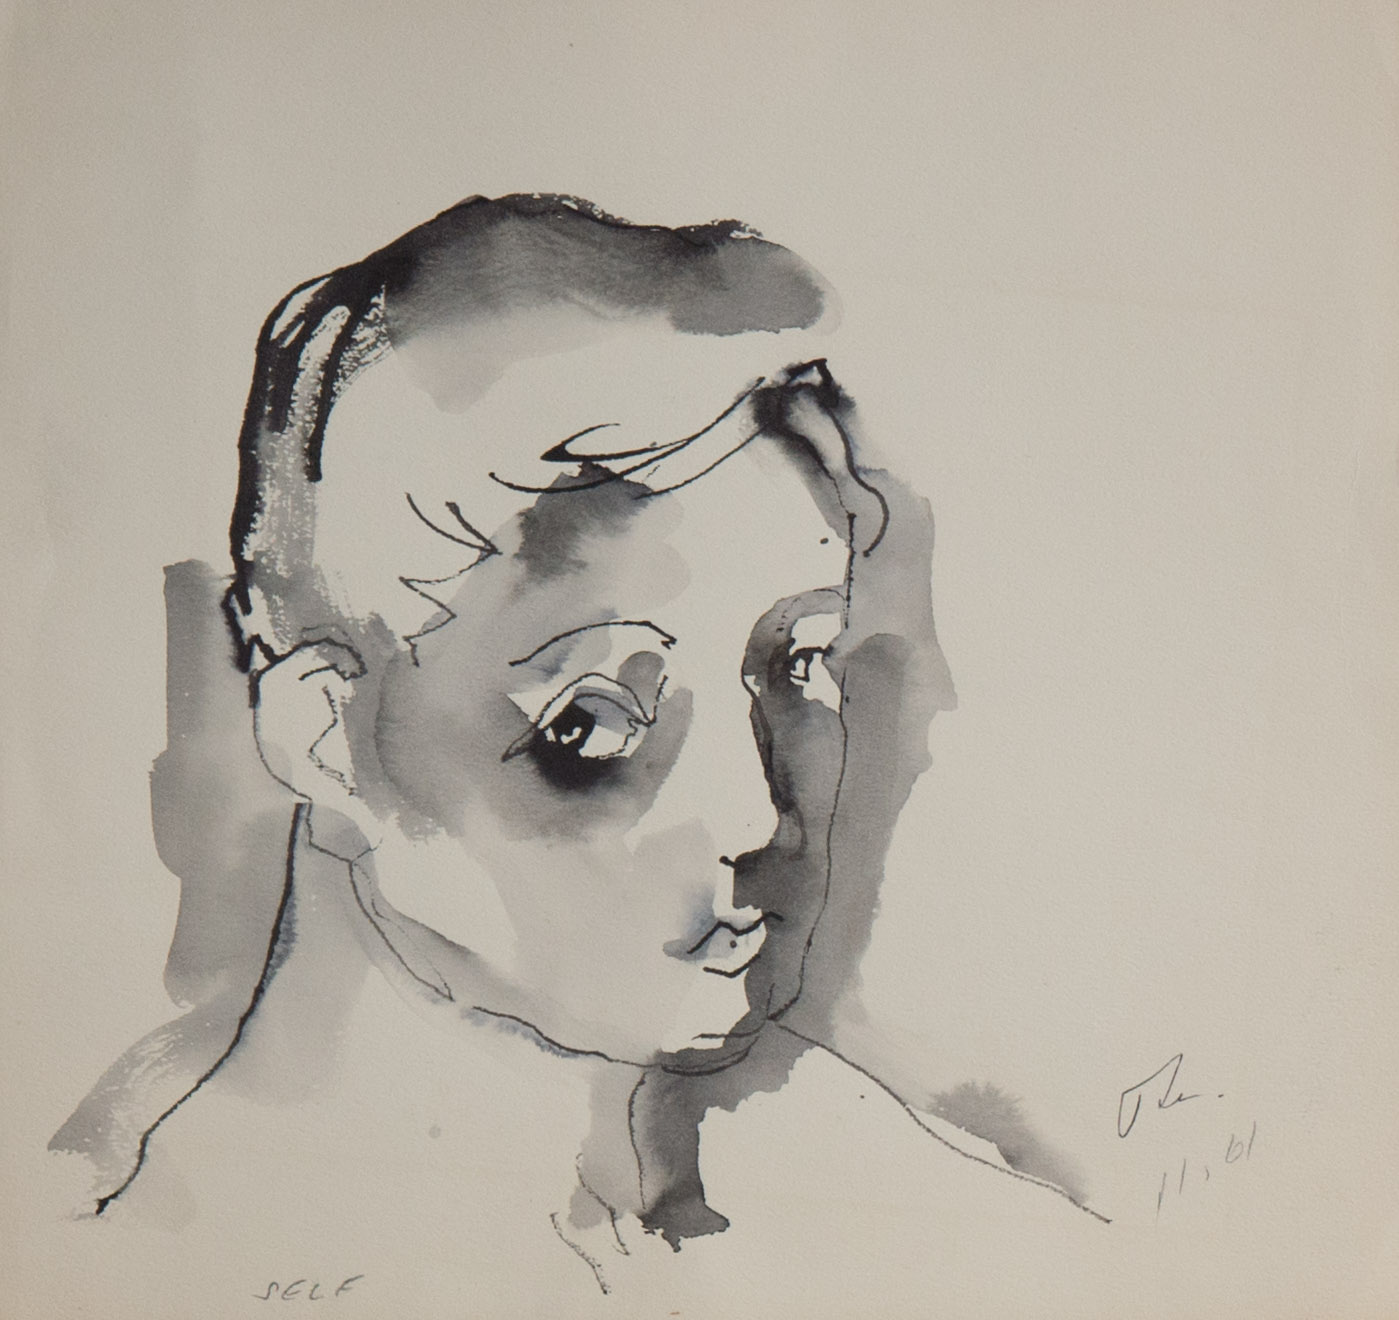 Theodore Titolo,  Self Portrait , 1961, ink and pencil on paper, 11.5 x 12 in